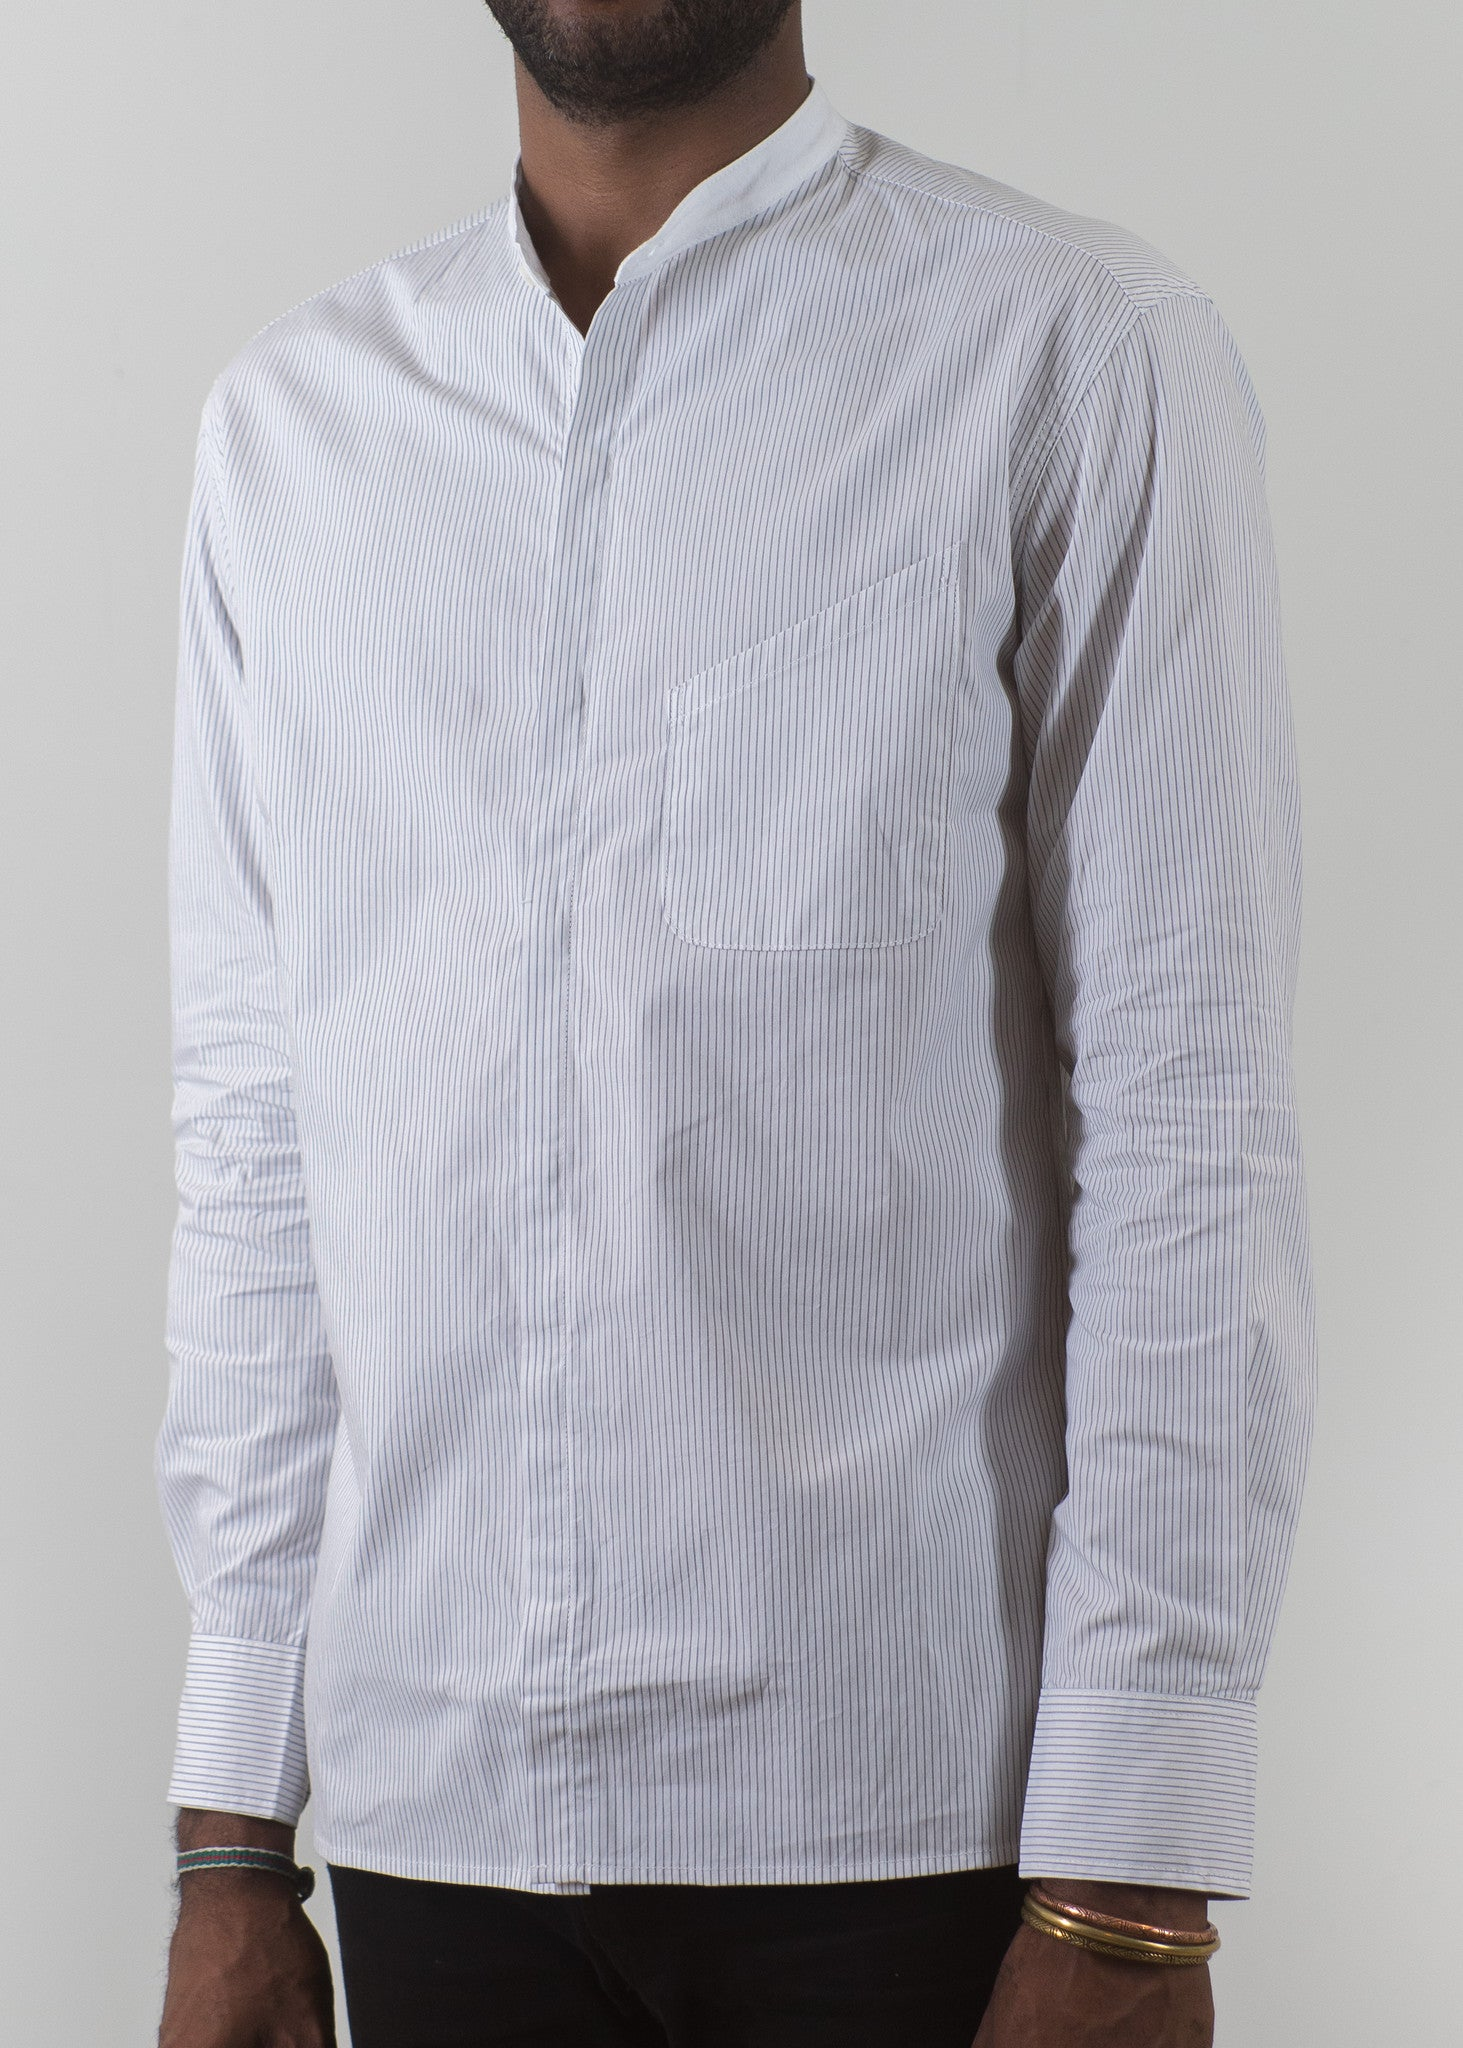 Grandad-Collar Shirt - Grey Pinstripes - New Union Clothing